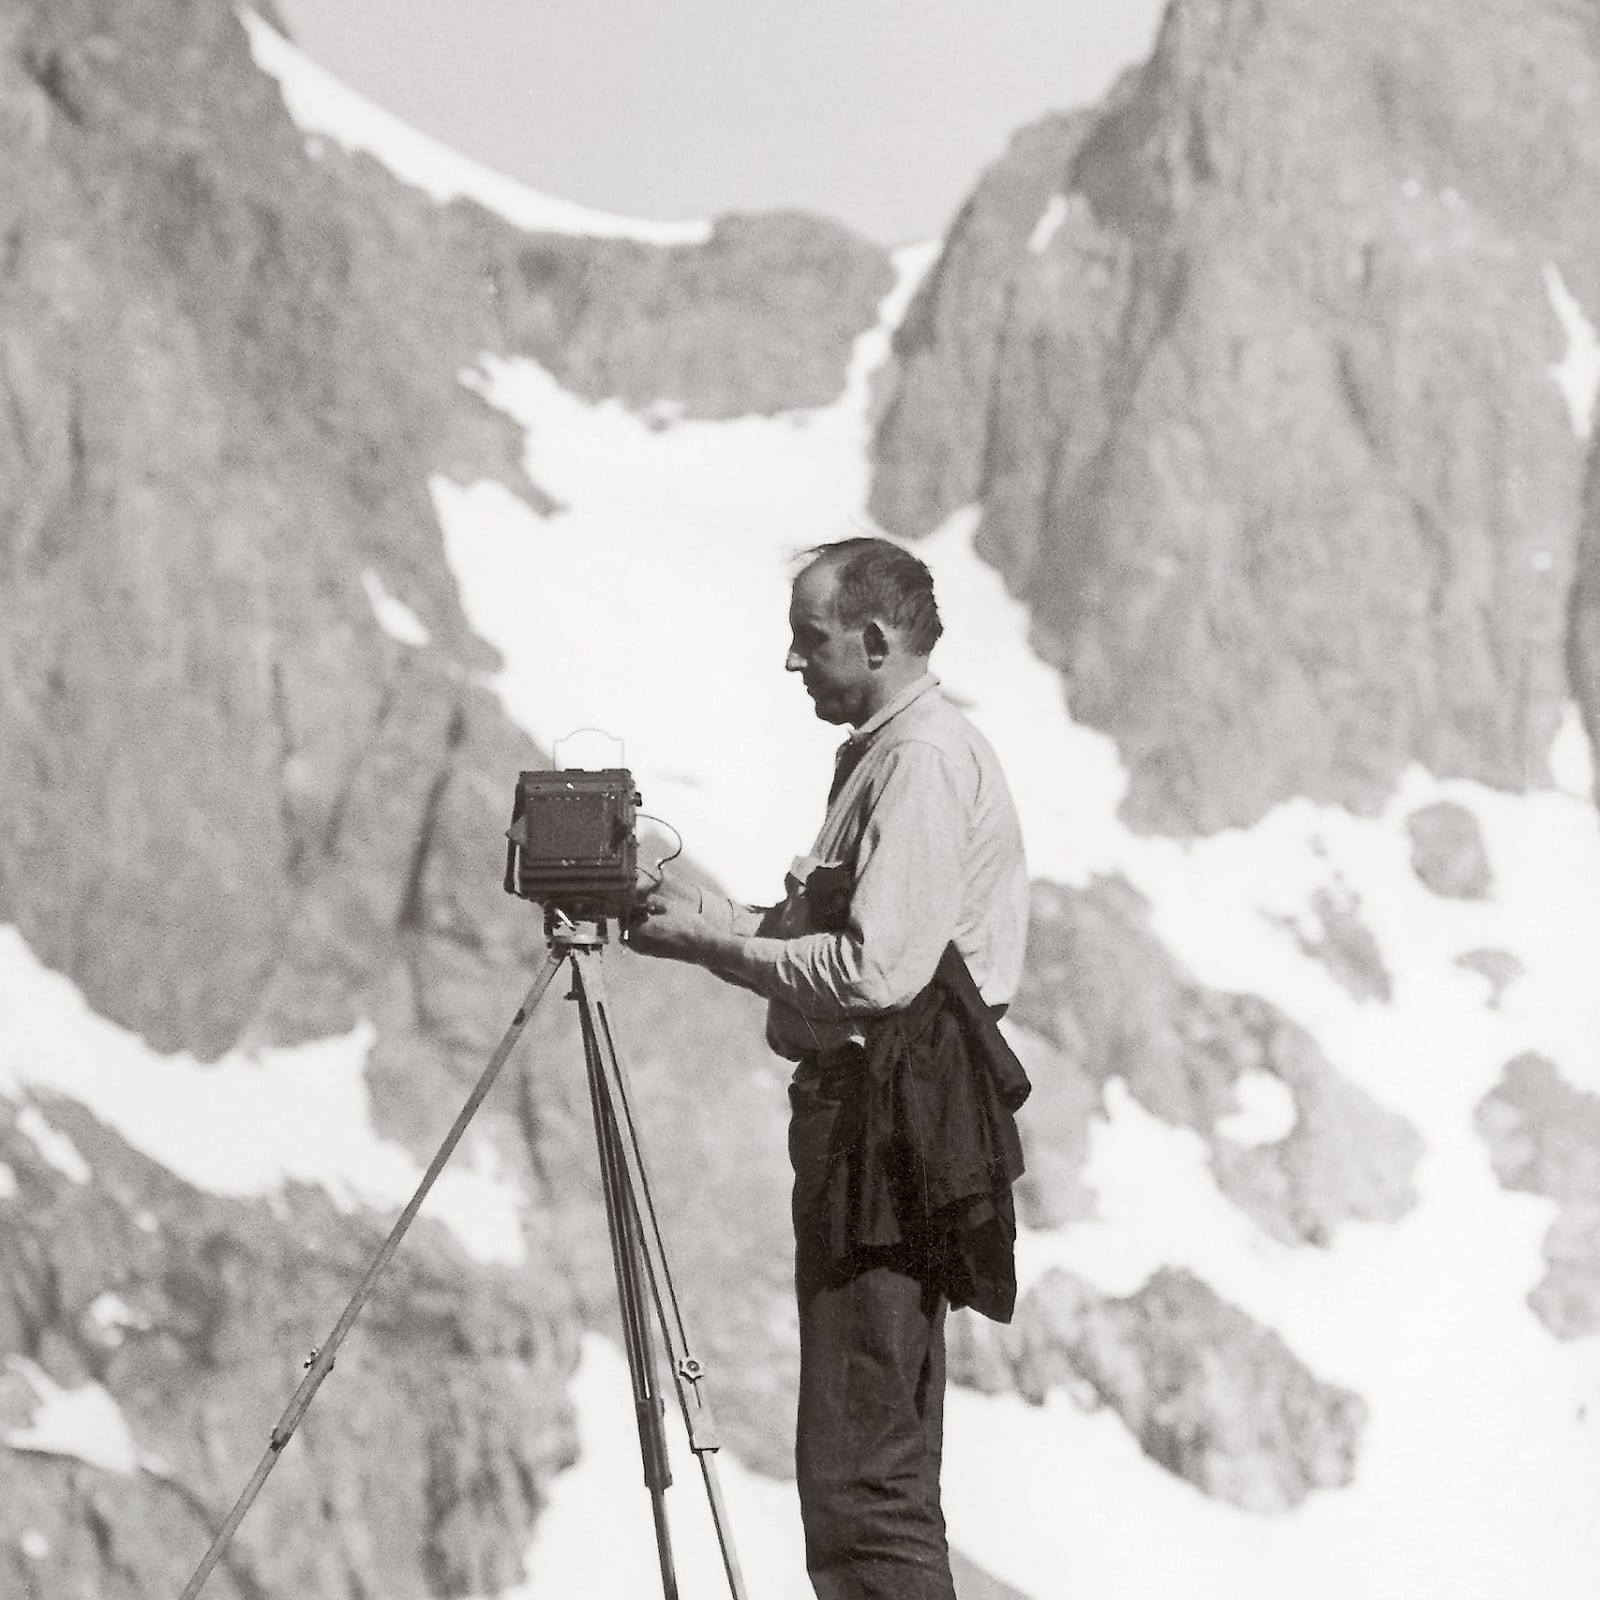 Ansel Adams in the Sierra, late 1930s